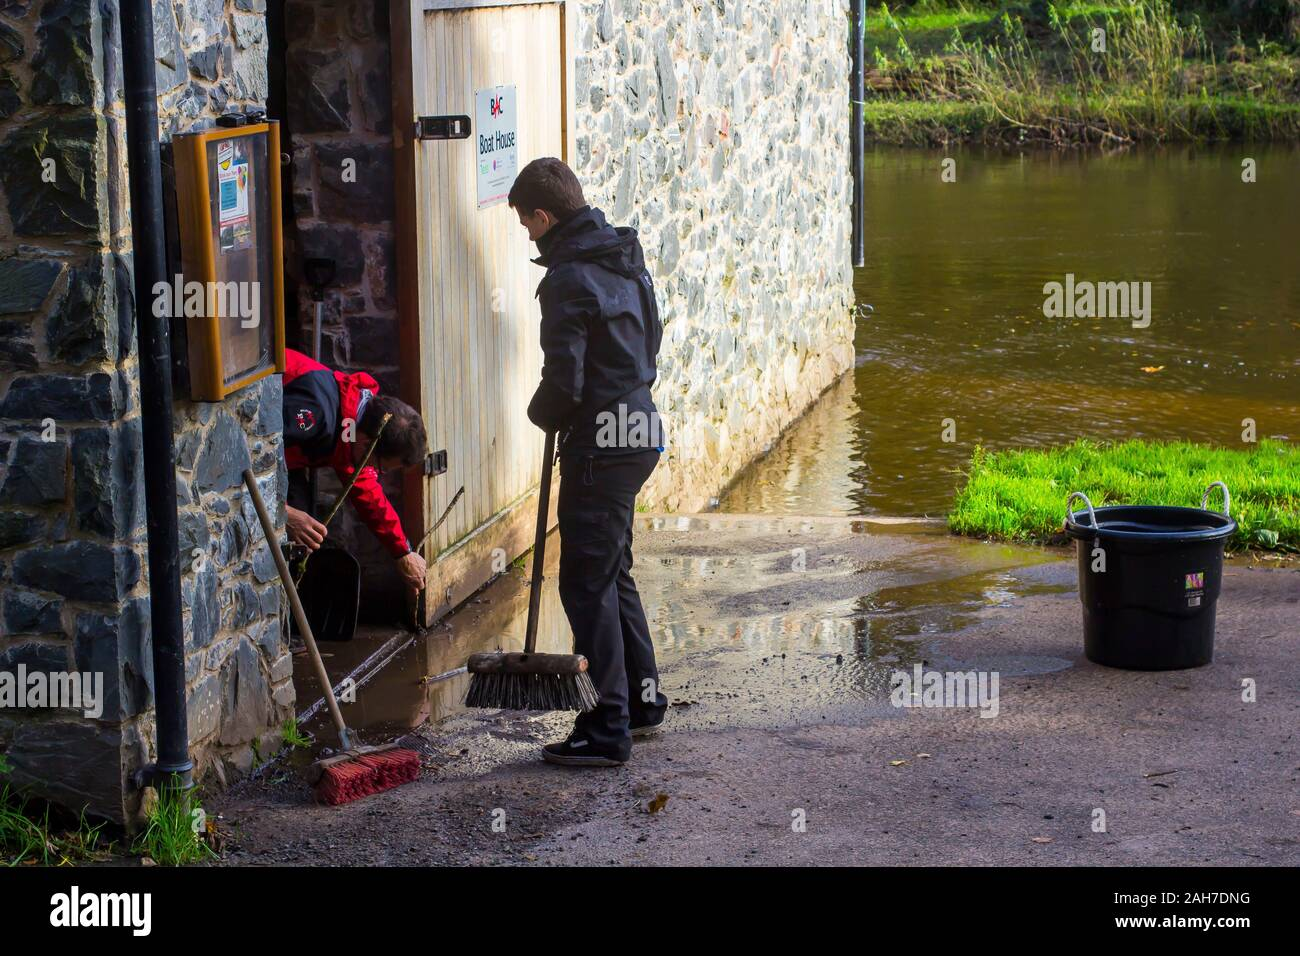 25 October 2017 Workmen carrying out routine maintenance on the door of the Lagan Boat House at shaw's Bridge in South Belfast Northern Ireland. This Stock Photo